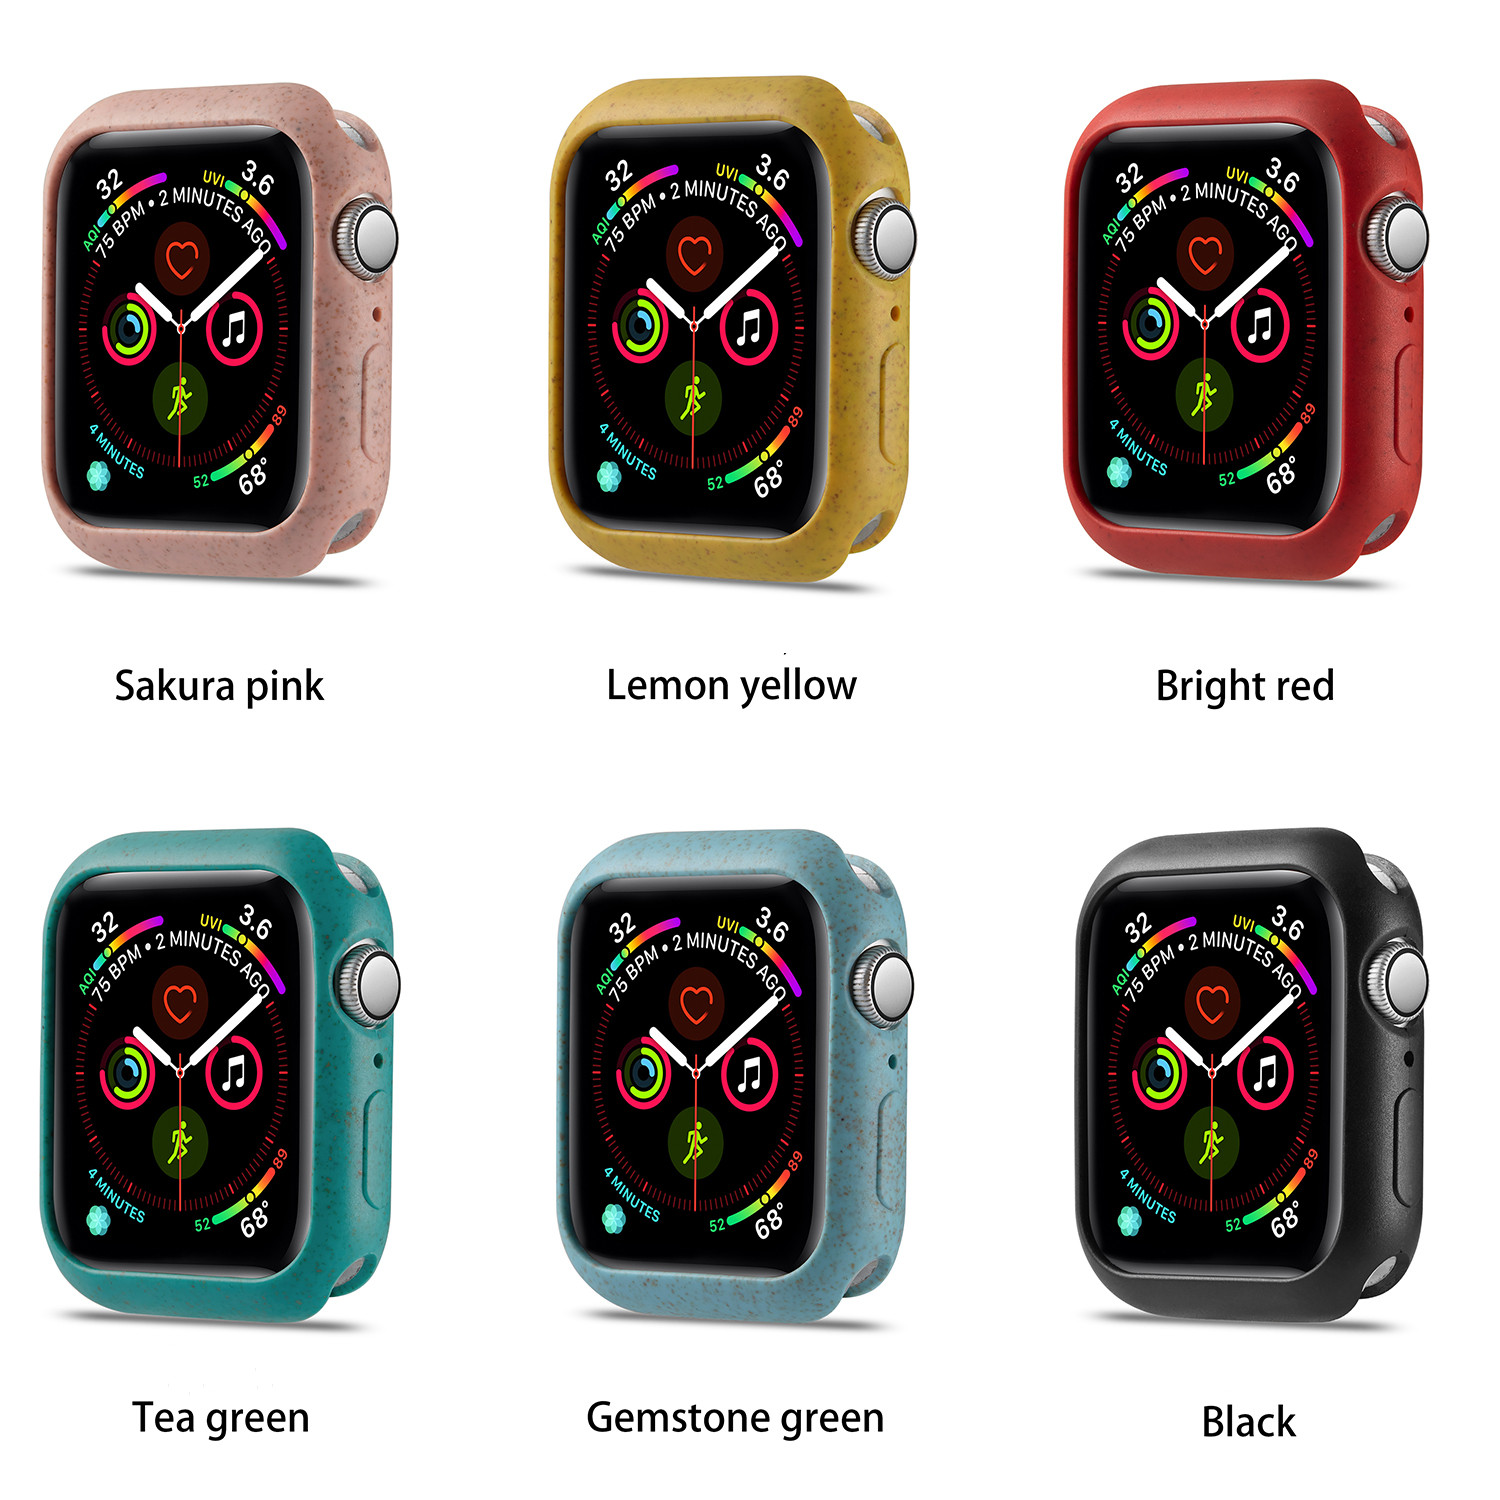 Protector Case For Apple Watch 4 5 3/2/1 40mm 44mm Macaroon Bumper Protector For IWatch Series 4 5 3 2 42mm 38mm